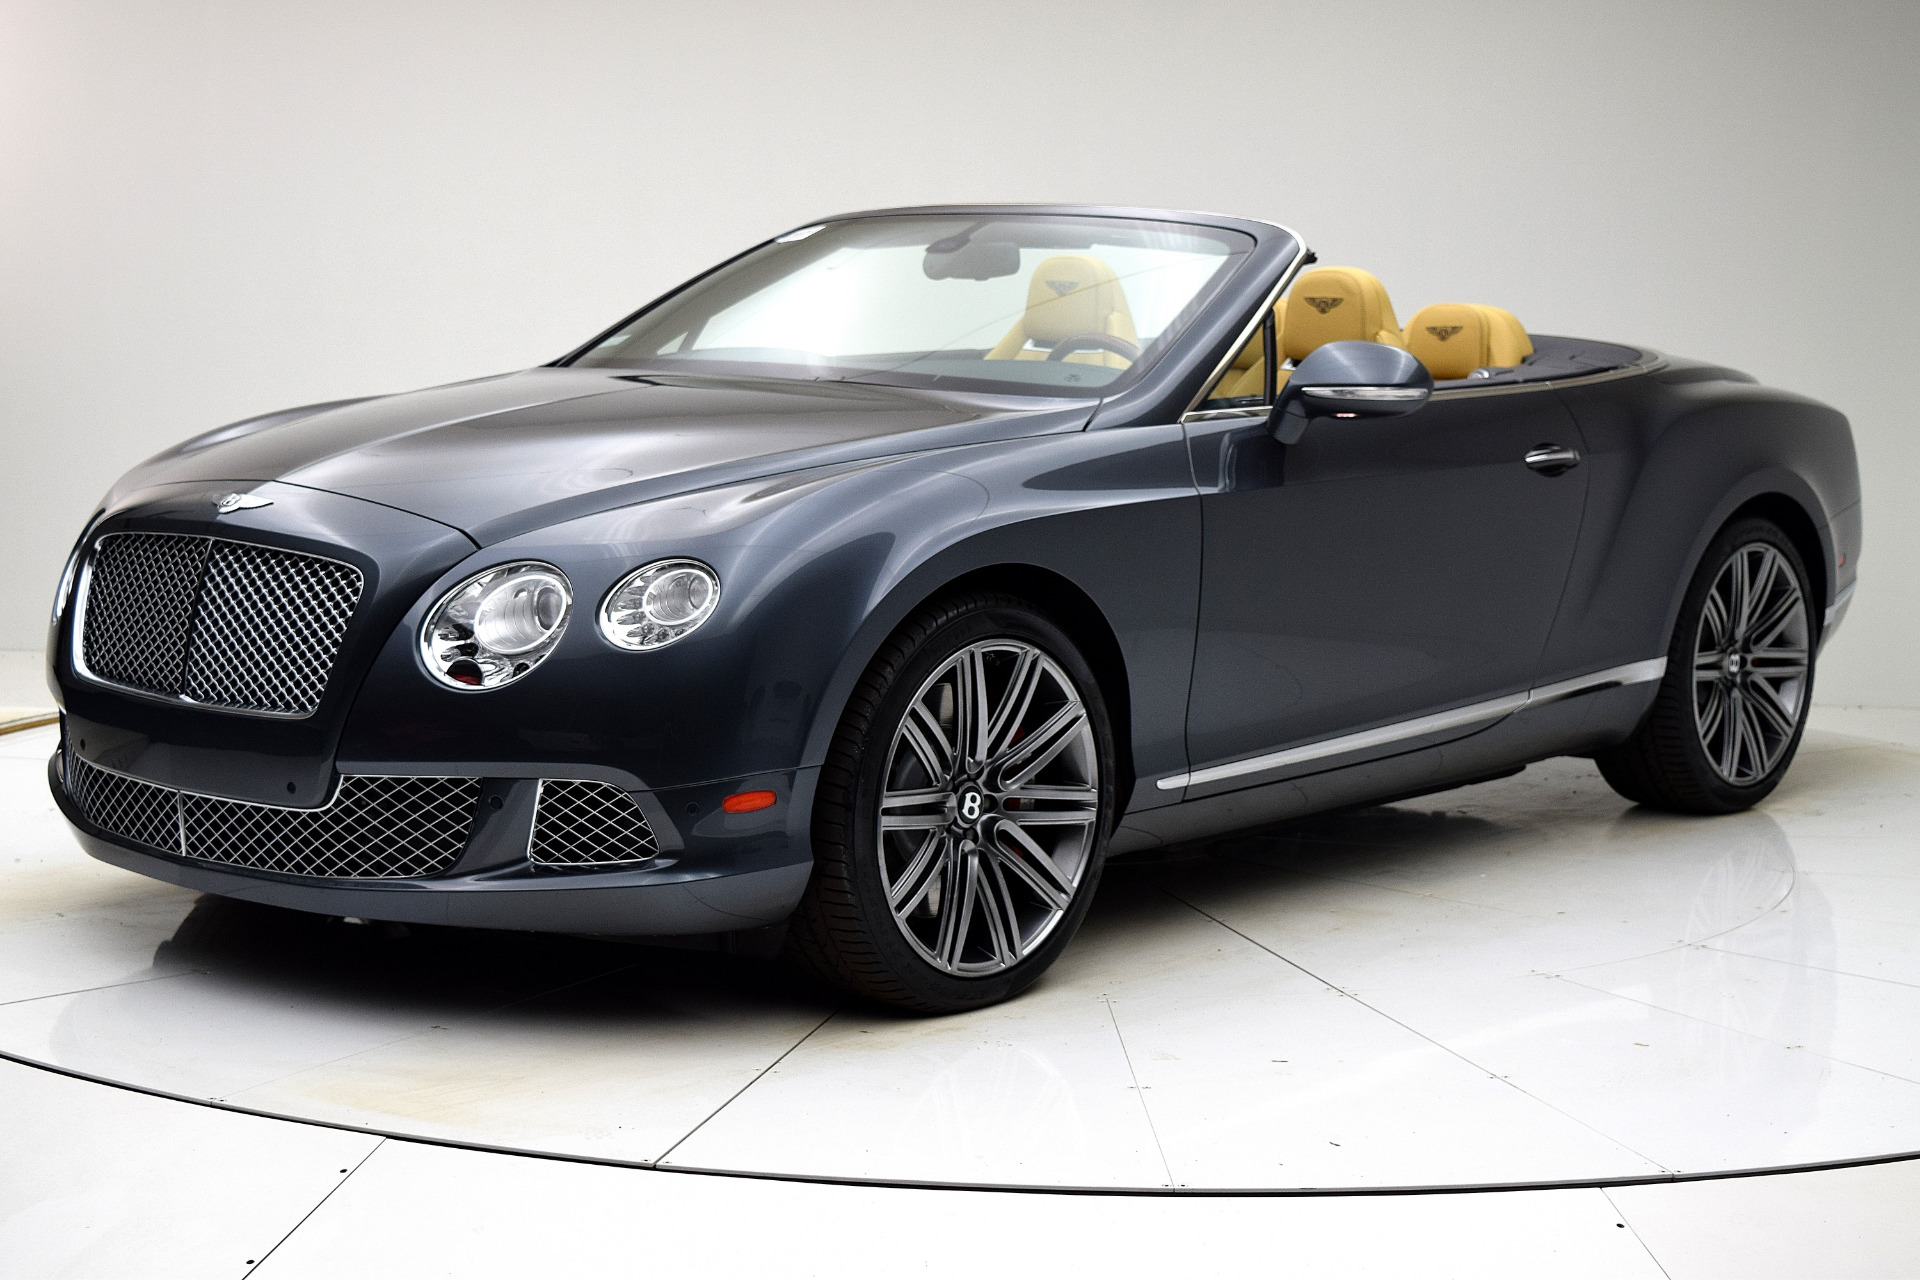 Used 2013 Bentley Continental GT W12 Convertible for sale Sold at F.C. Kerbeck Bentley Palmyra N.J. in Palmyra NJ 08065 2